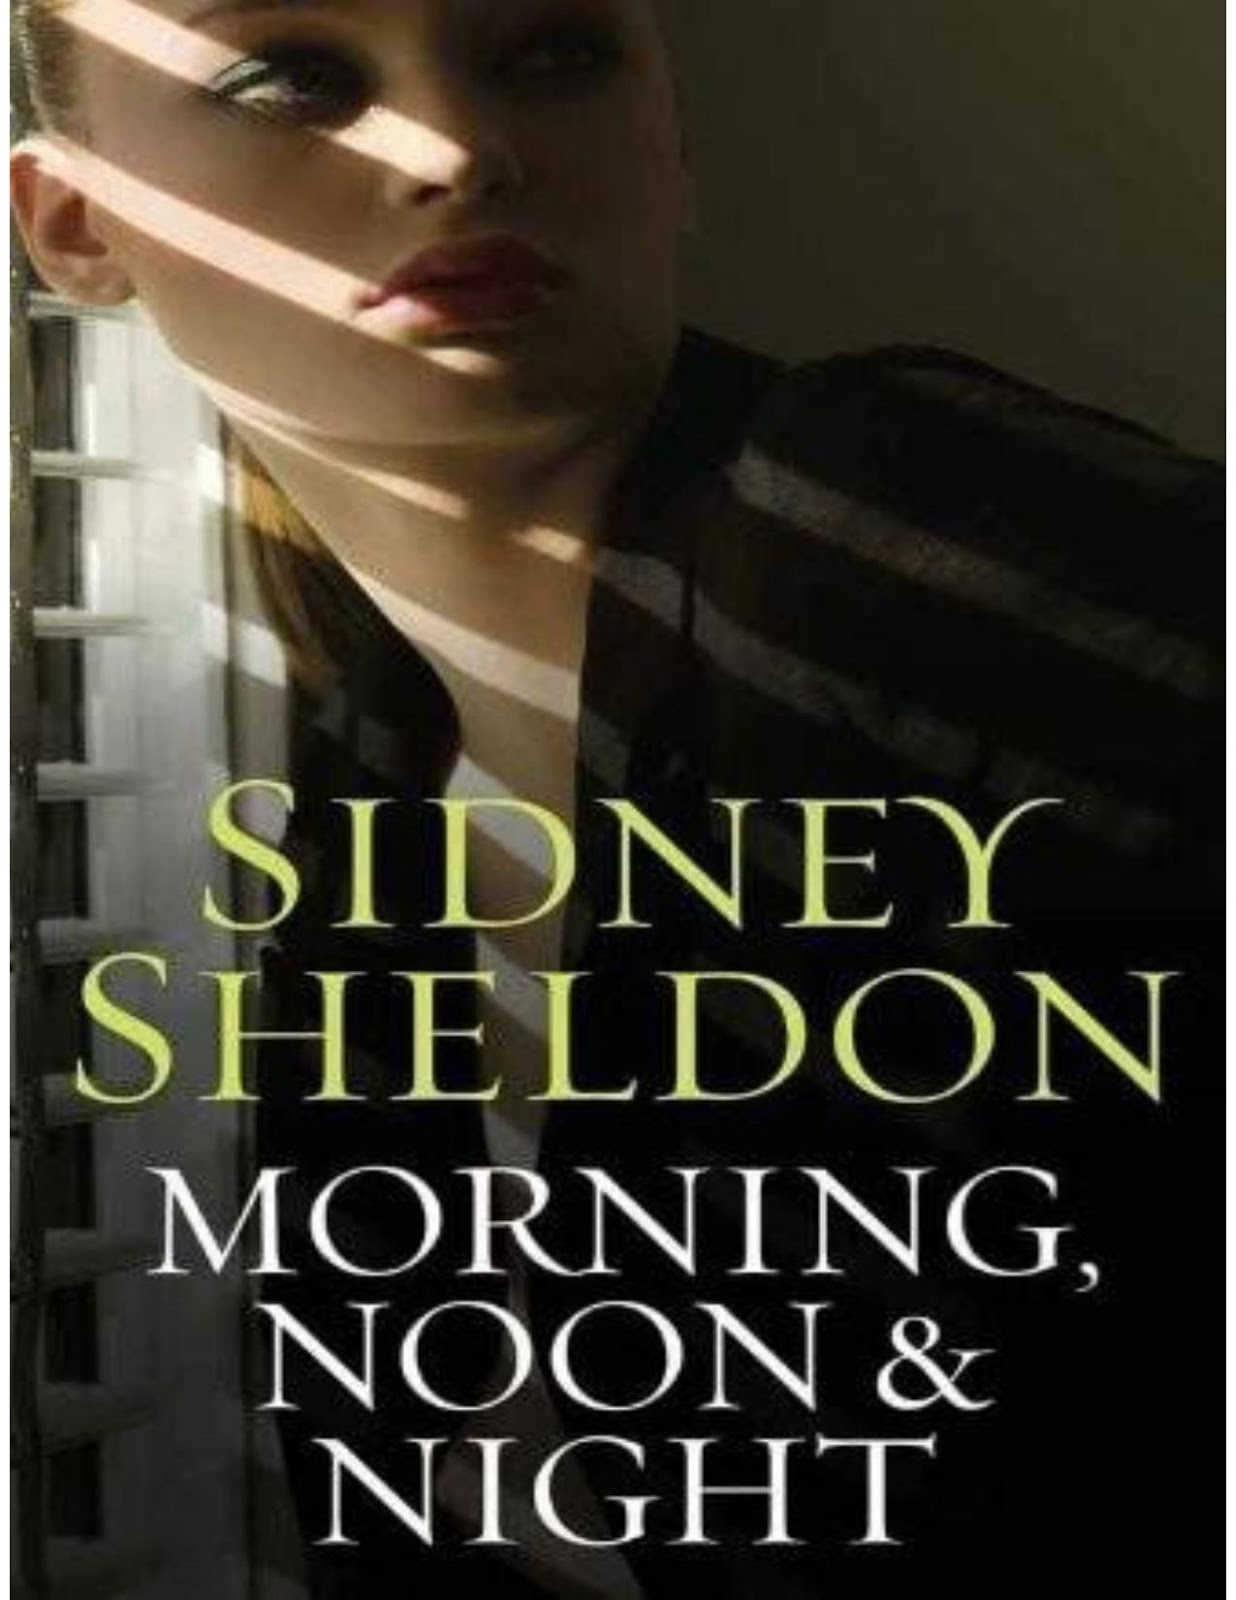 Sidney Sheldon Ebooks Epub